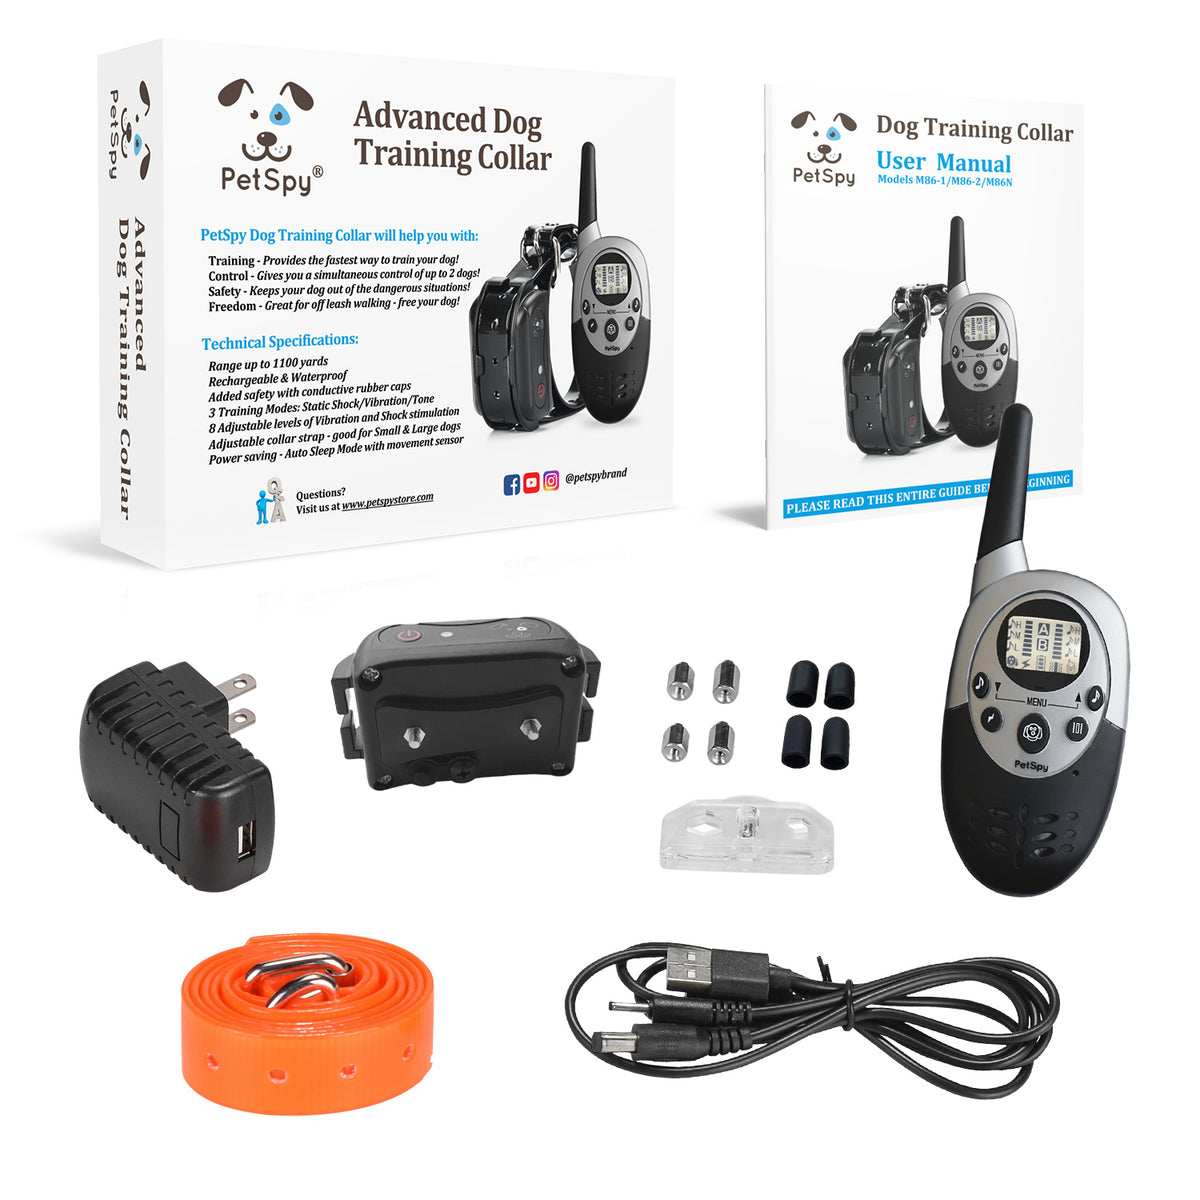 PetSpy M86-1 package: receiver, transmitter, orange collar, charger, two sets of prongs, manual